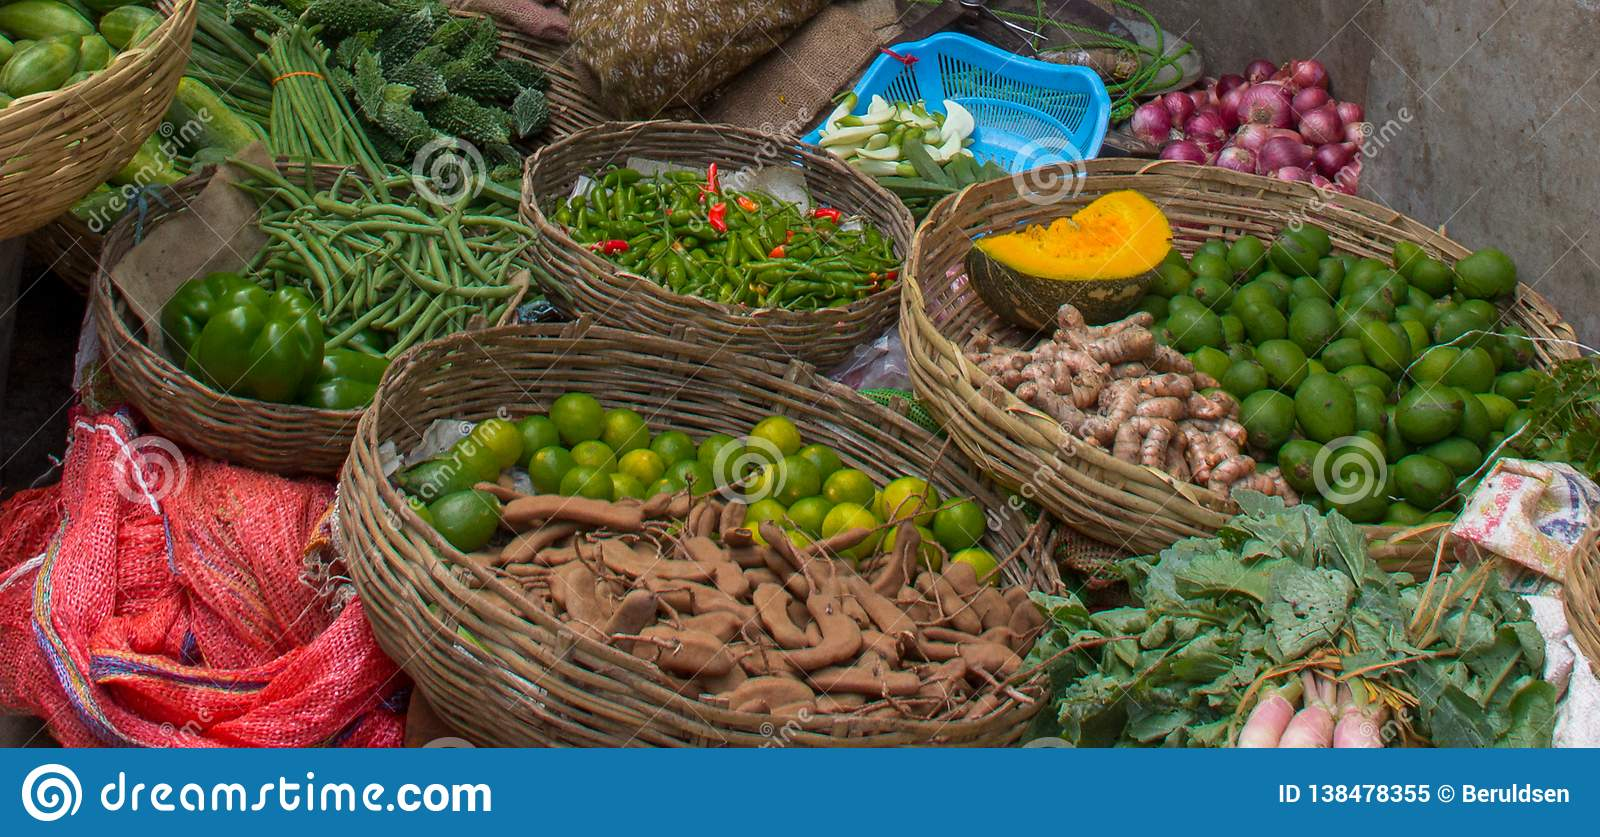 Fruit and Vegetable Market in India